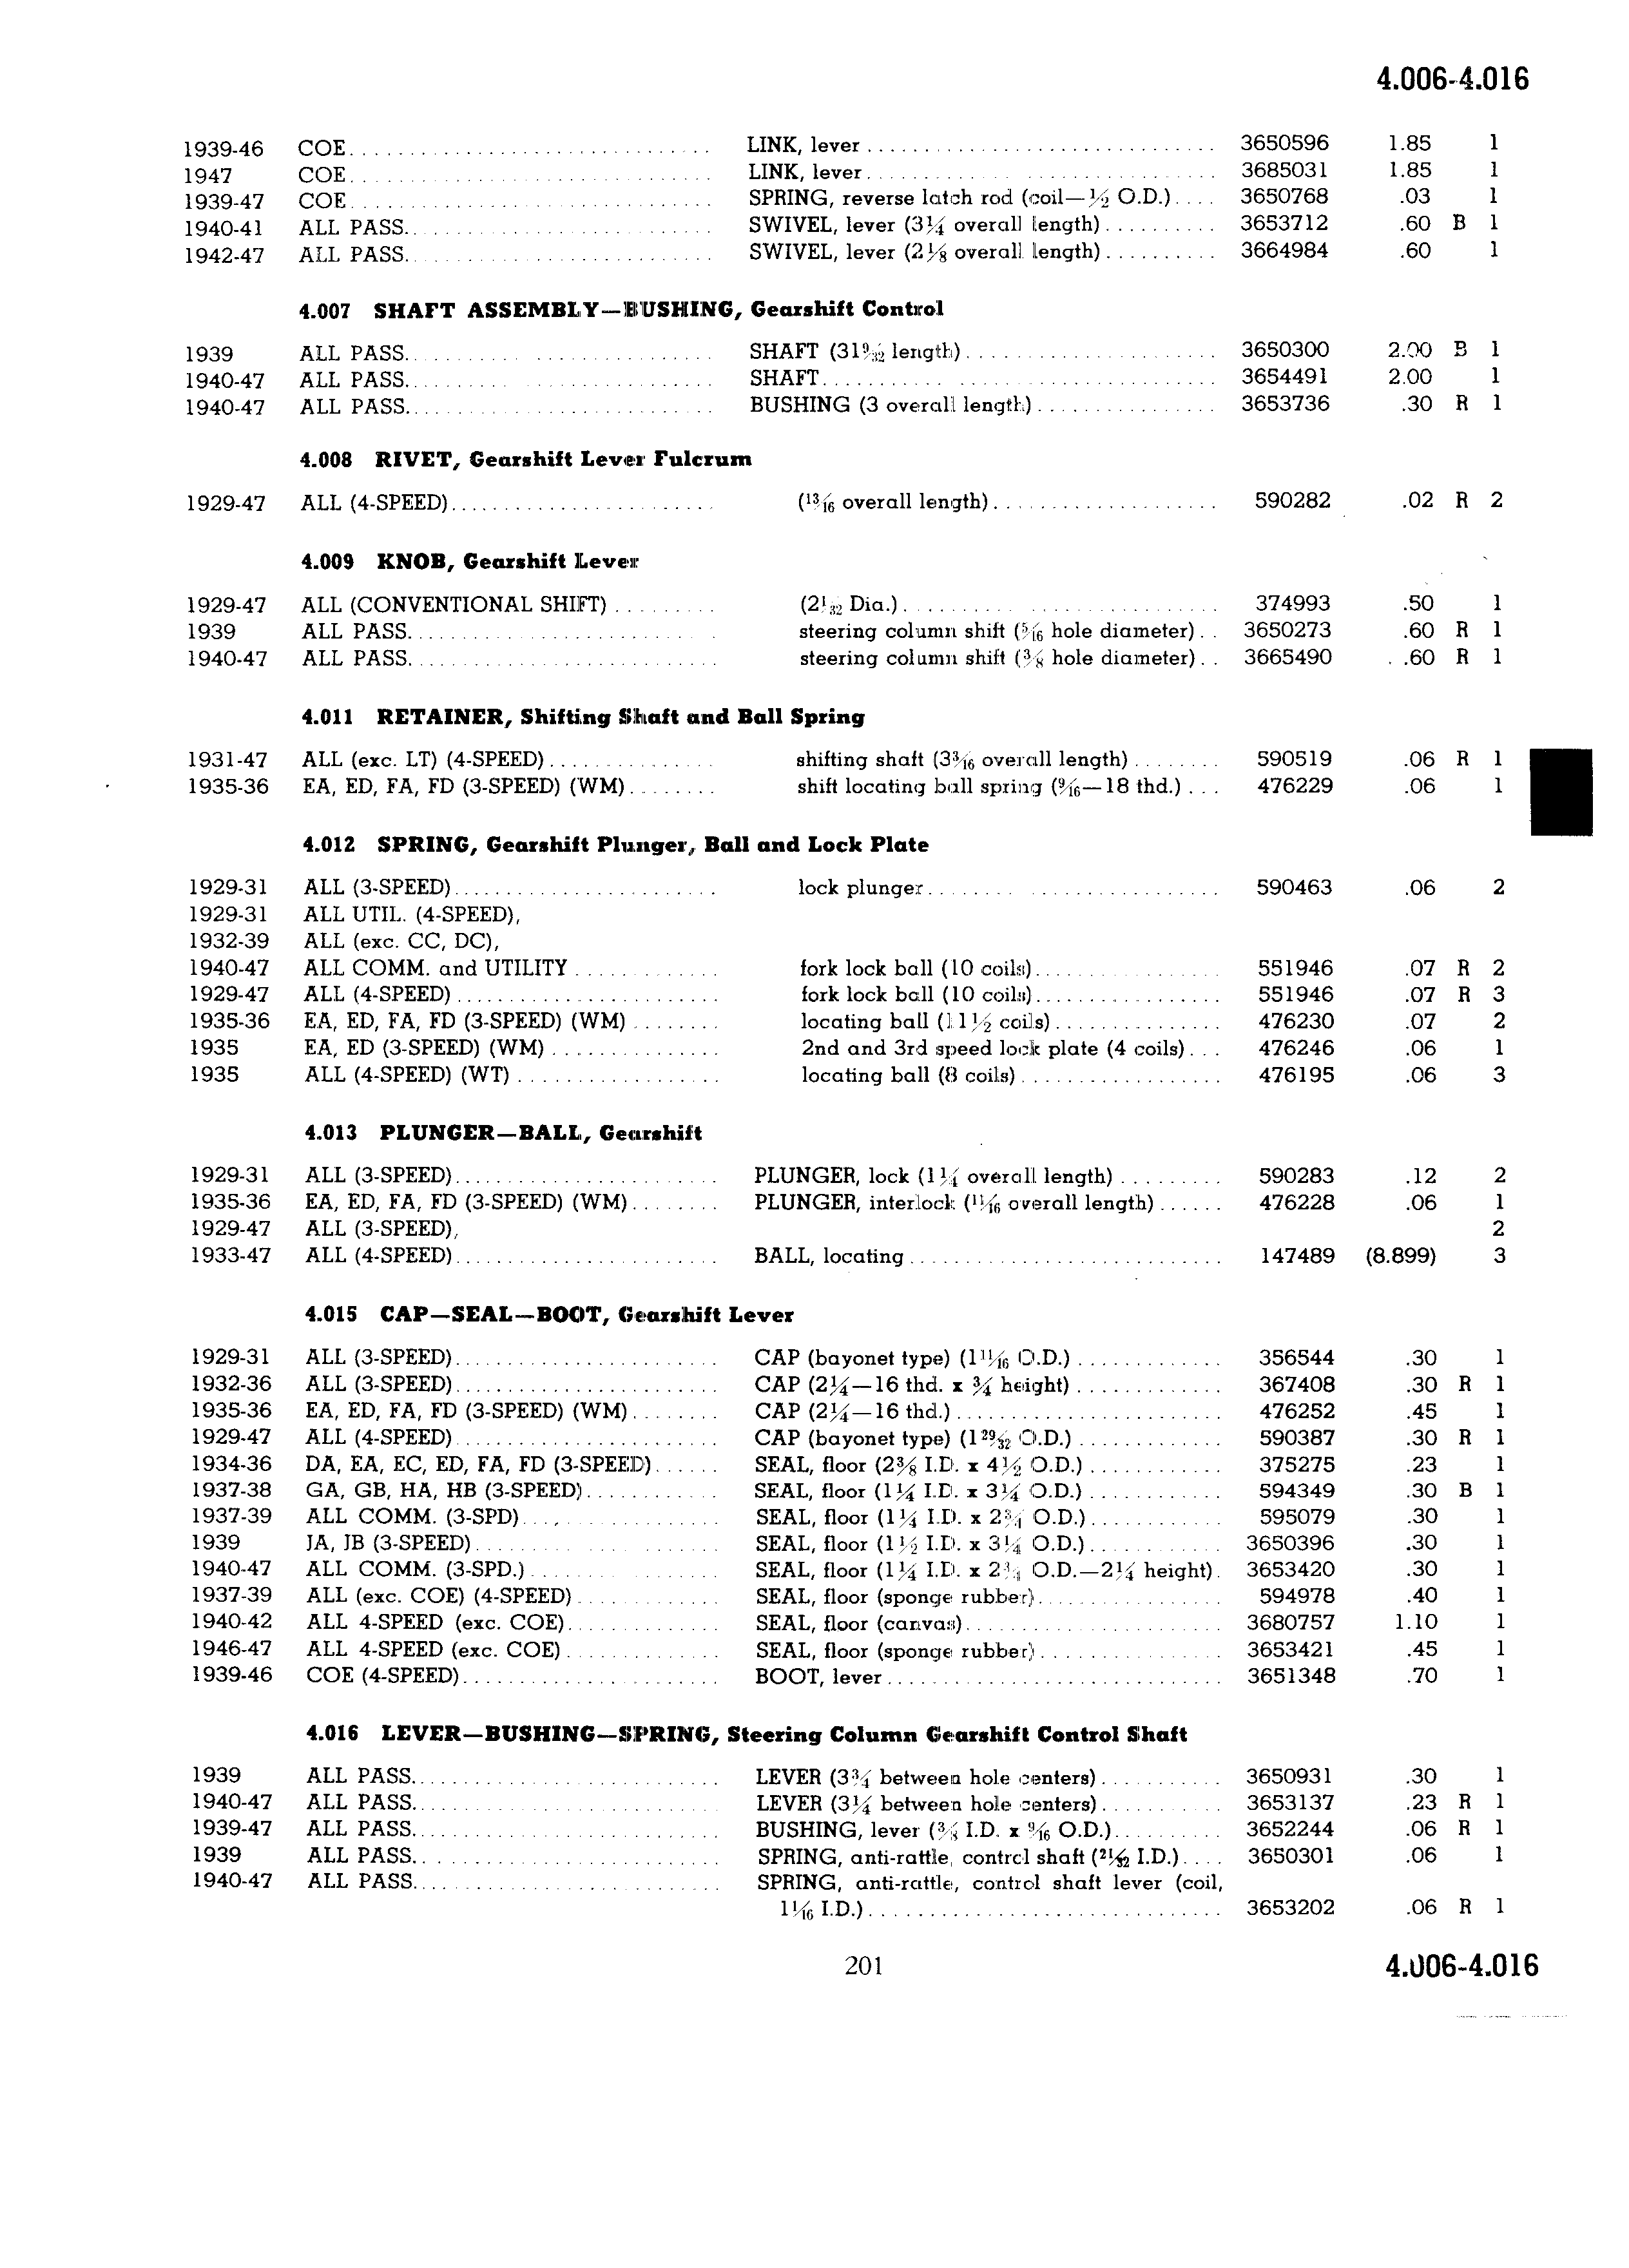 Master Parts Price List July 1947